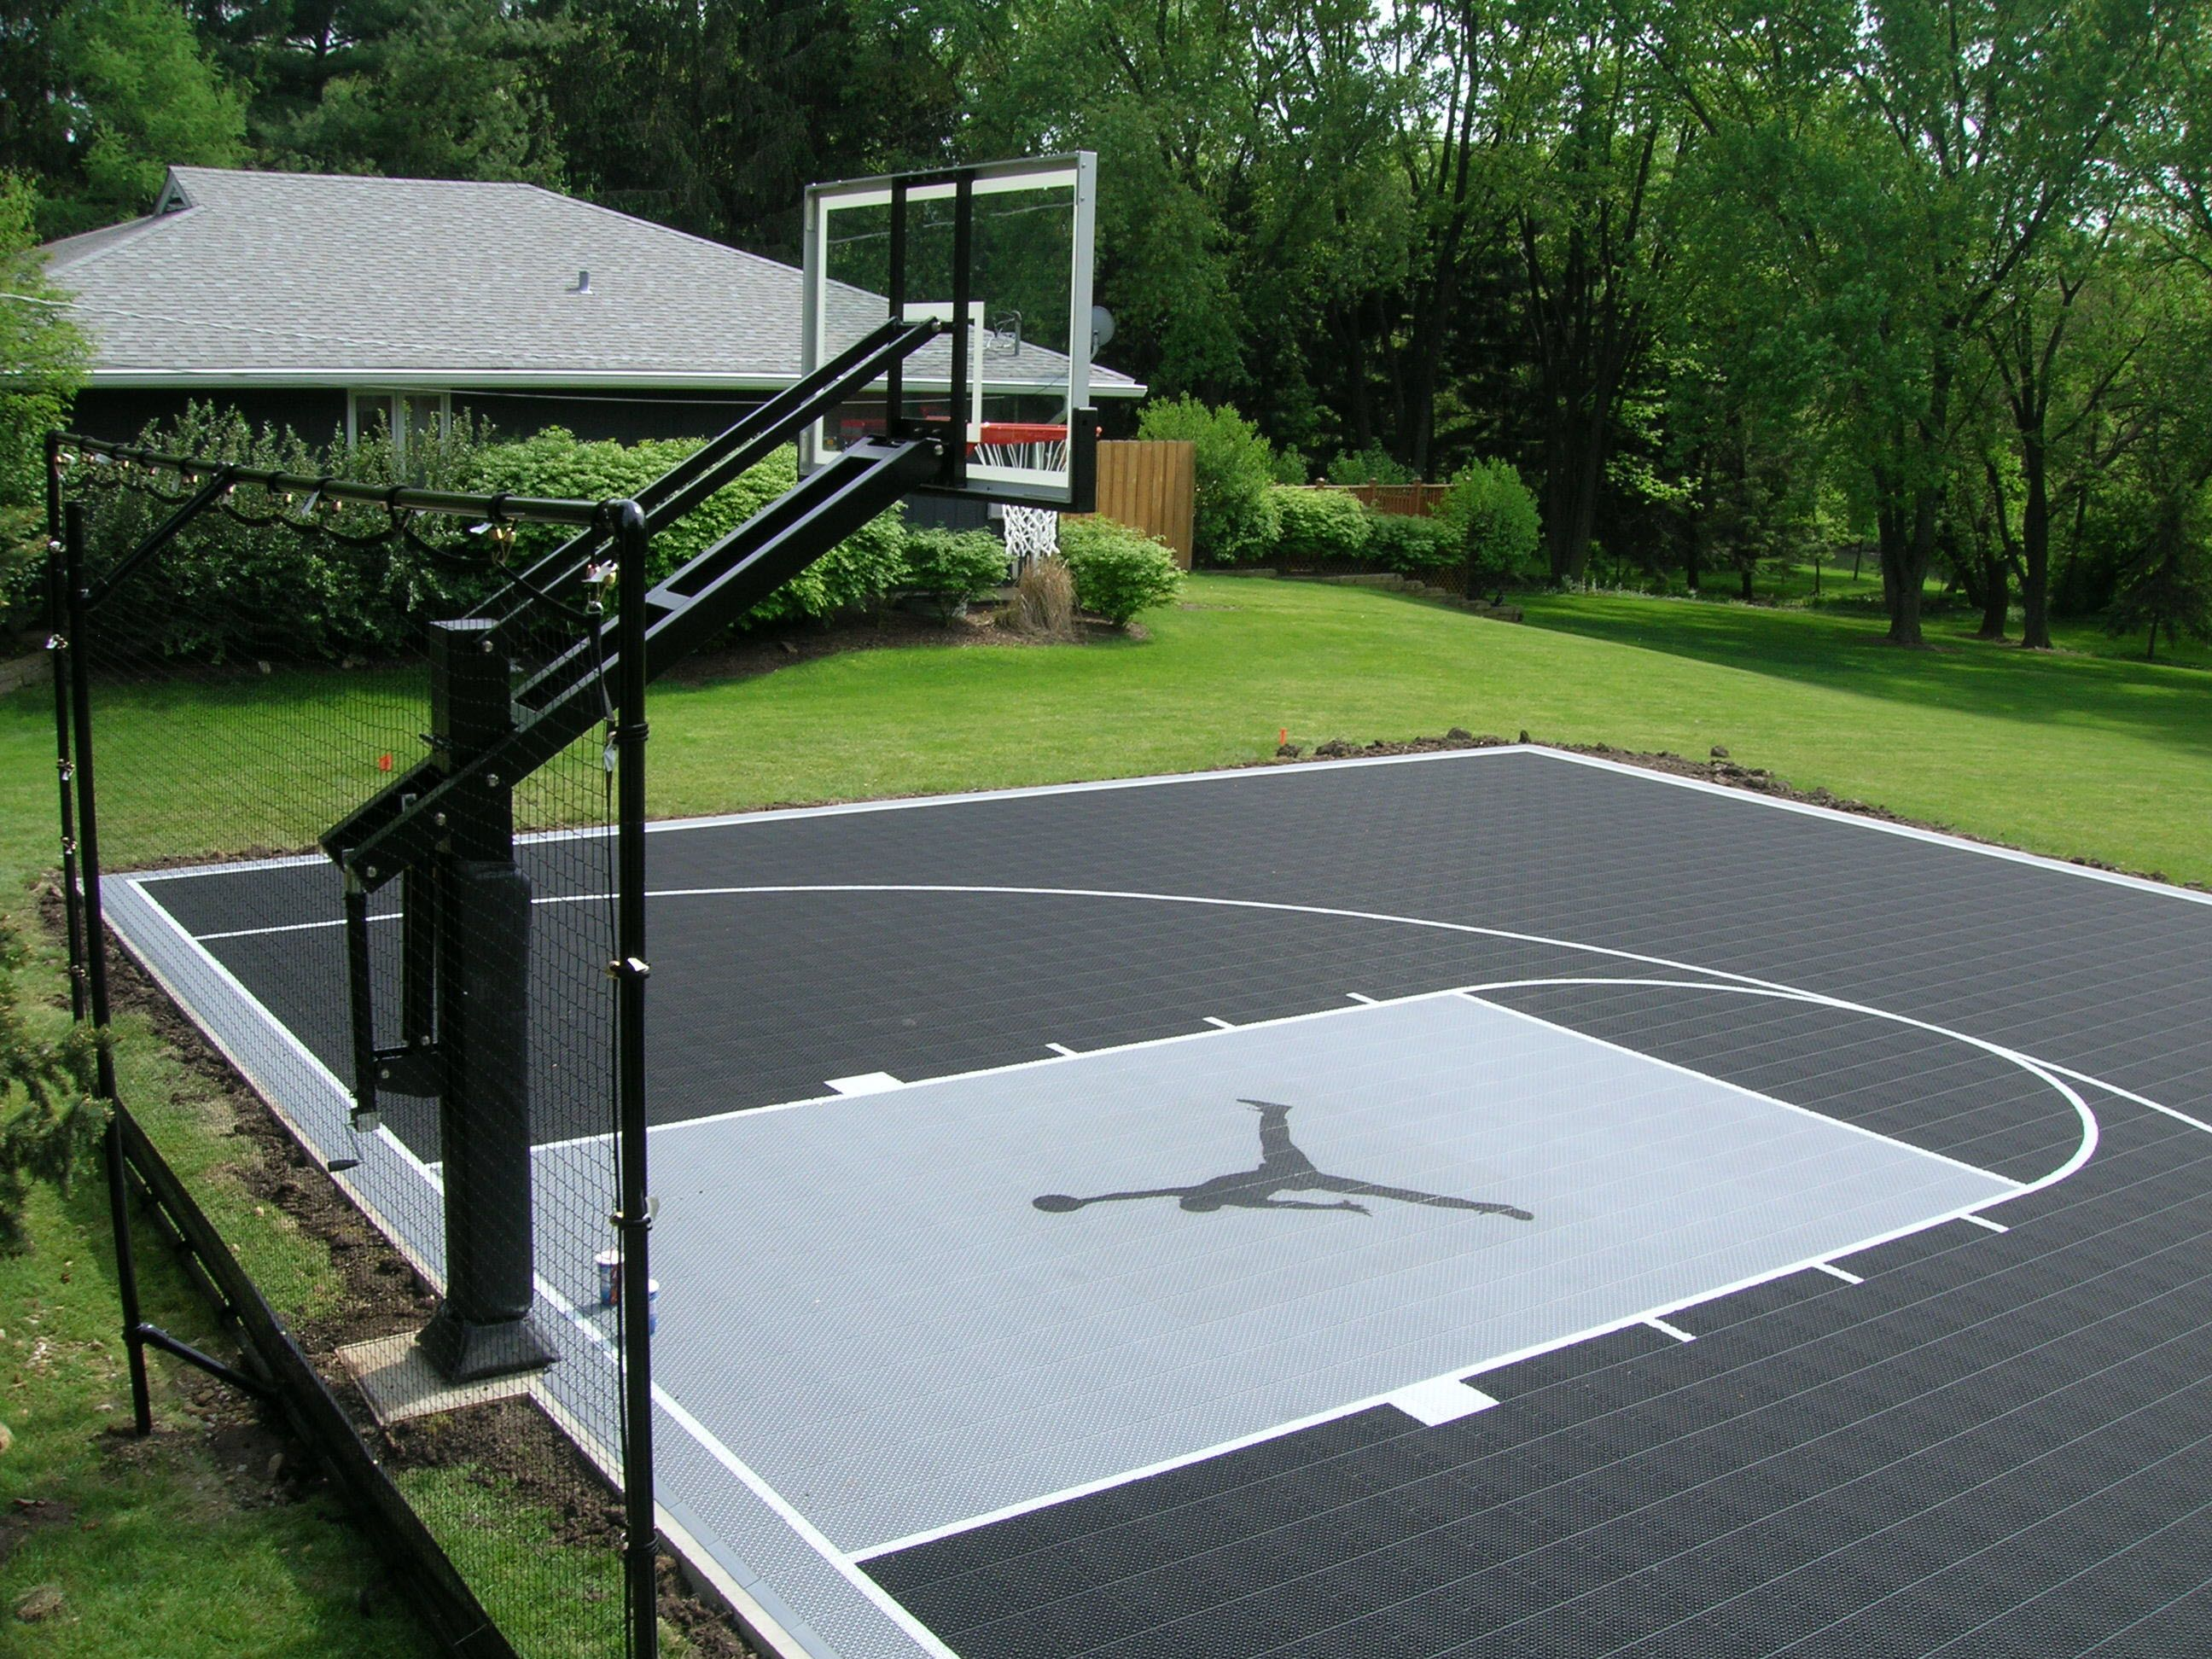 Basketball Court Competitor Basketball Court 30 X 45 Basketball Court Backyard Home Basketball Court Backyard Court